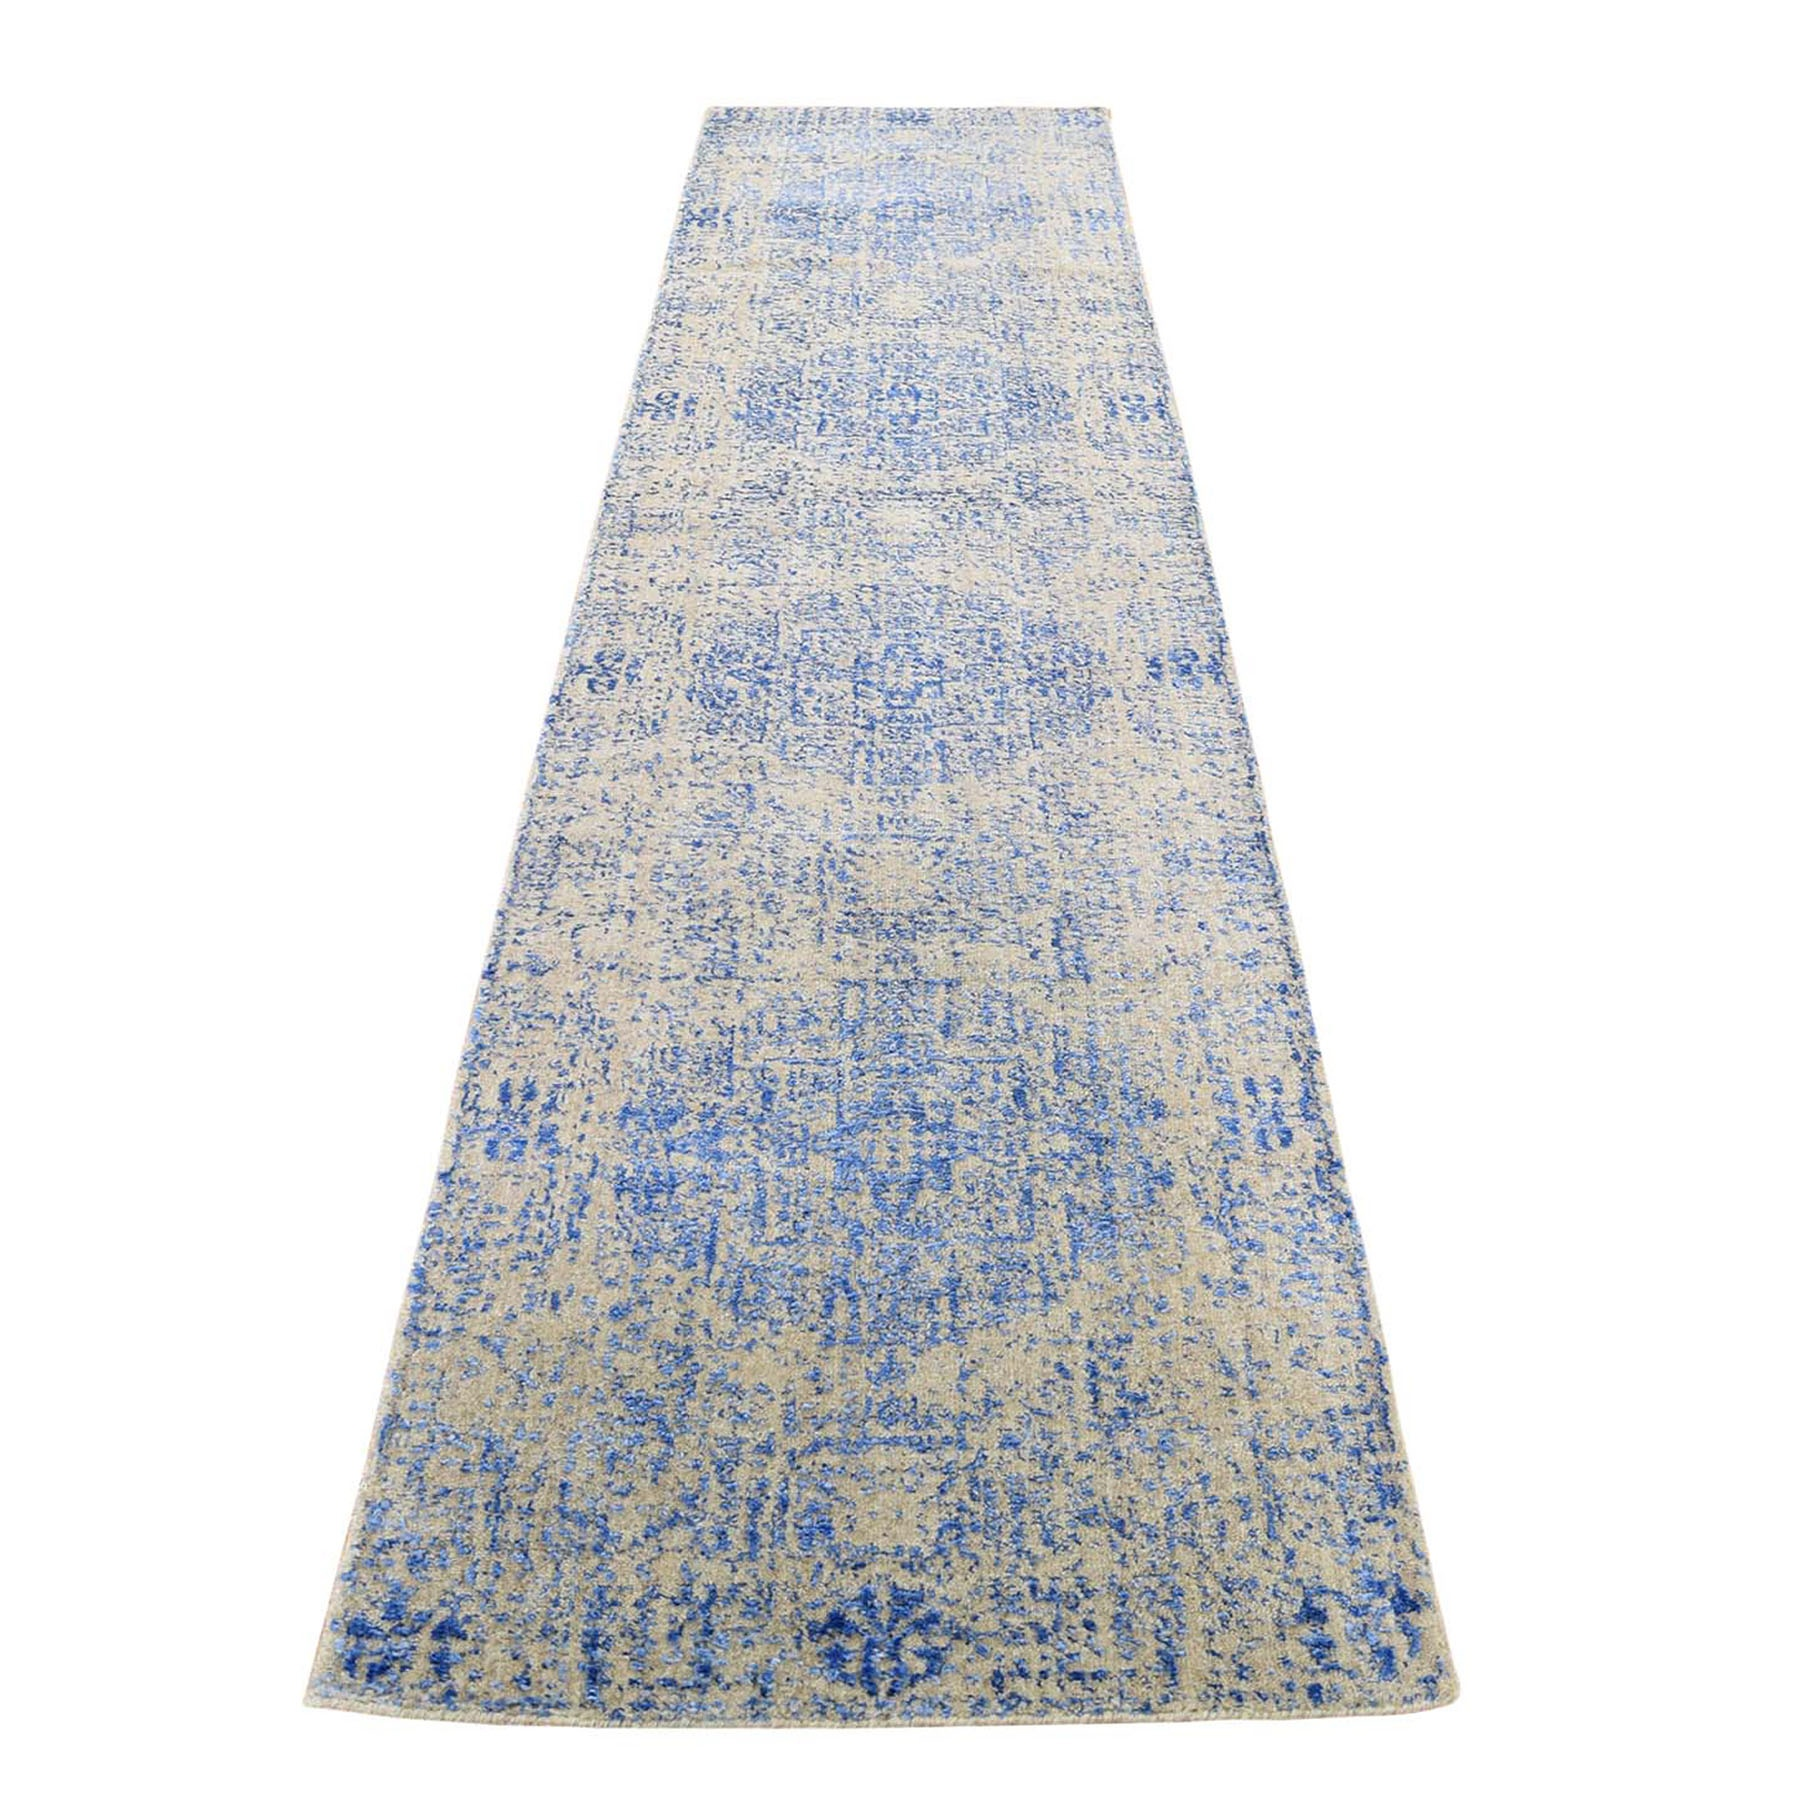 Intricate Collection Hand Loomed Blue Rug No: 0198222